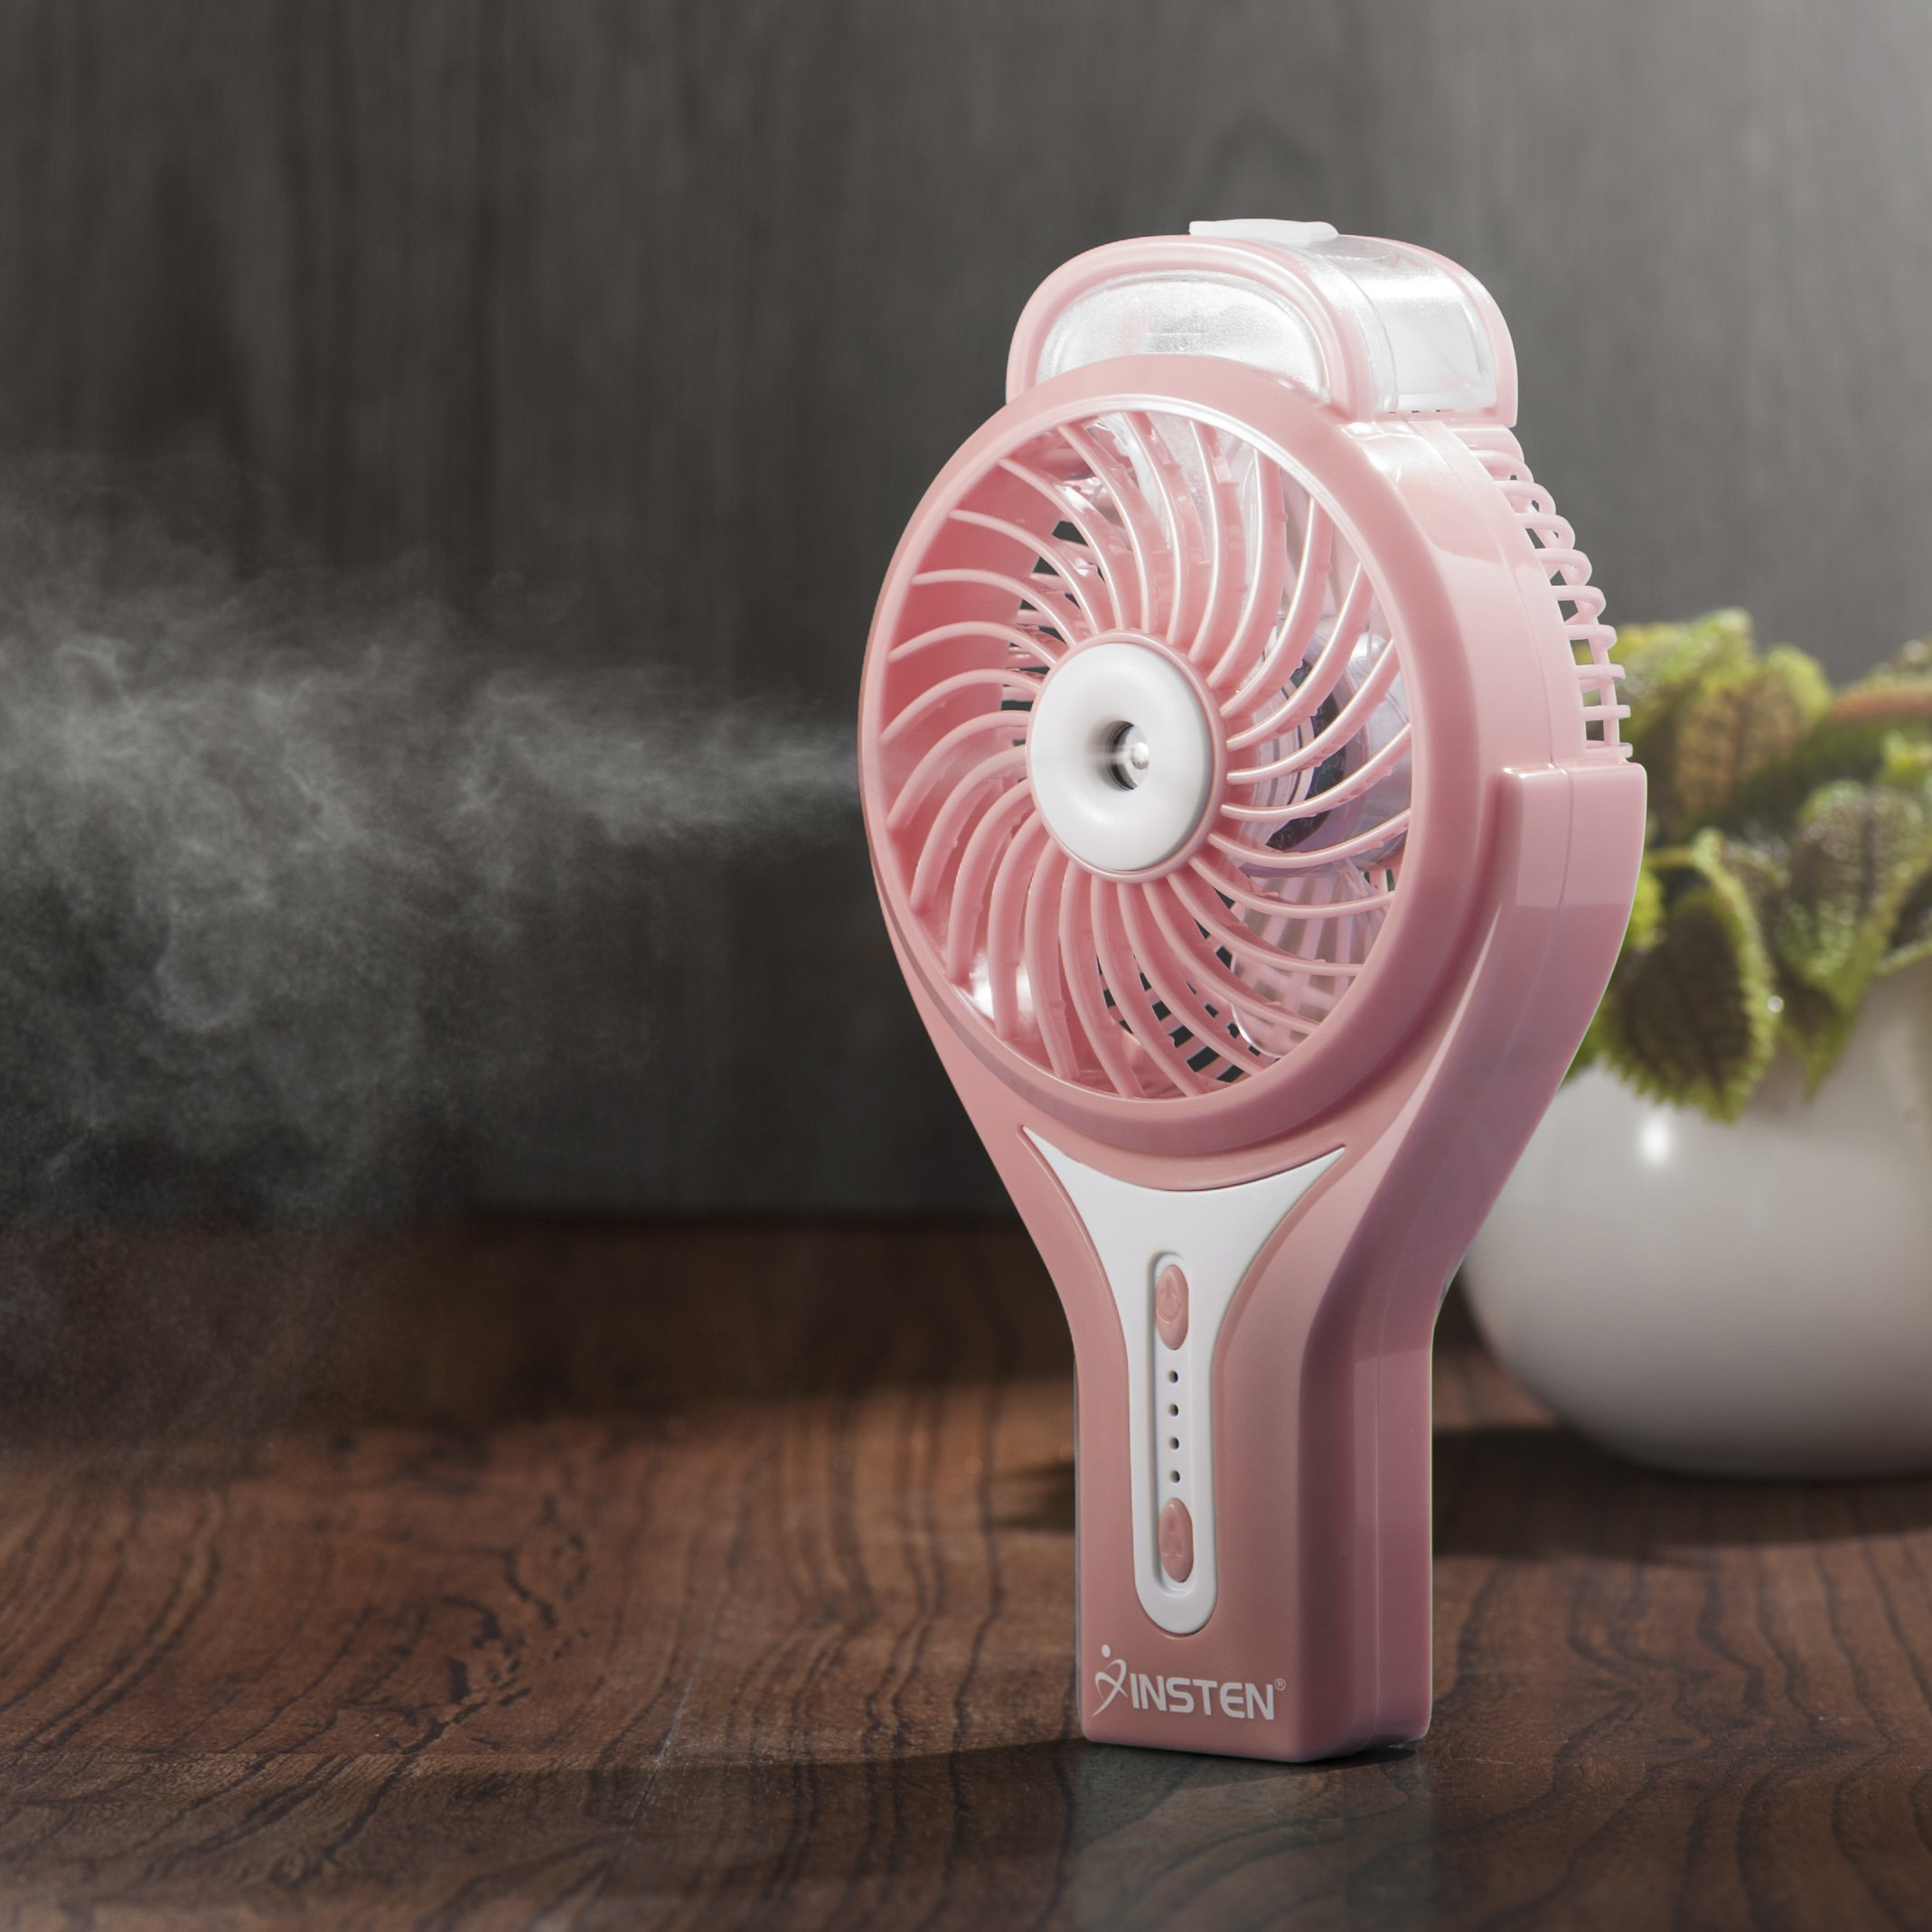 Insten Portable Electric Water Misting Fan - Silent Personal Mini Handheld Cooling Mister Humidifier Cooler (Includes Battery Charging USB Cable)-Pink